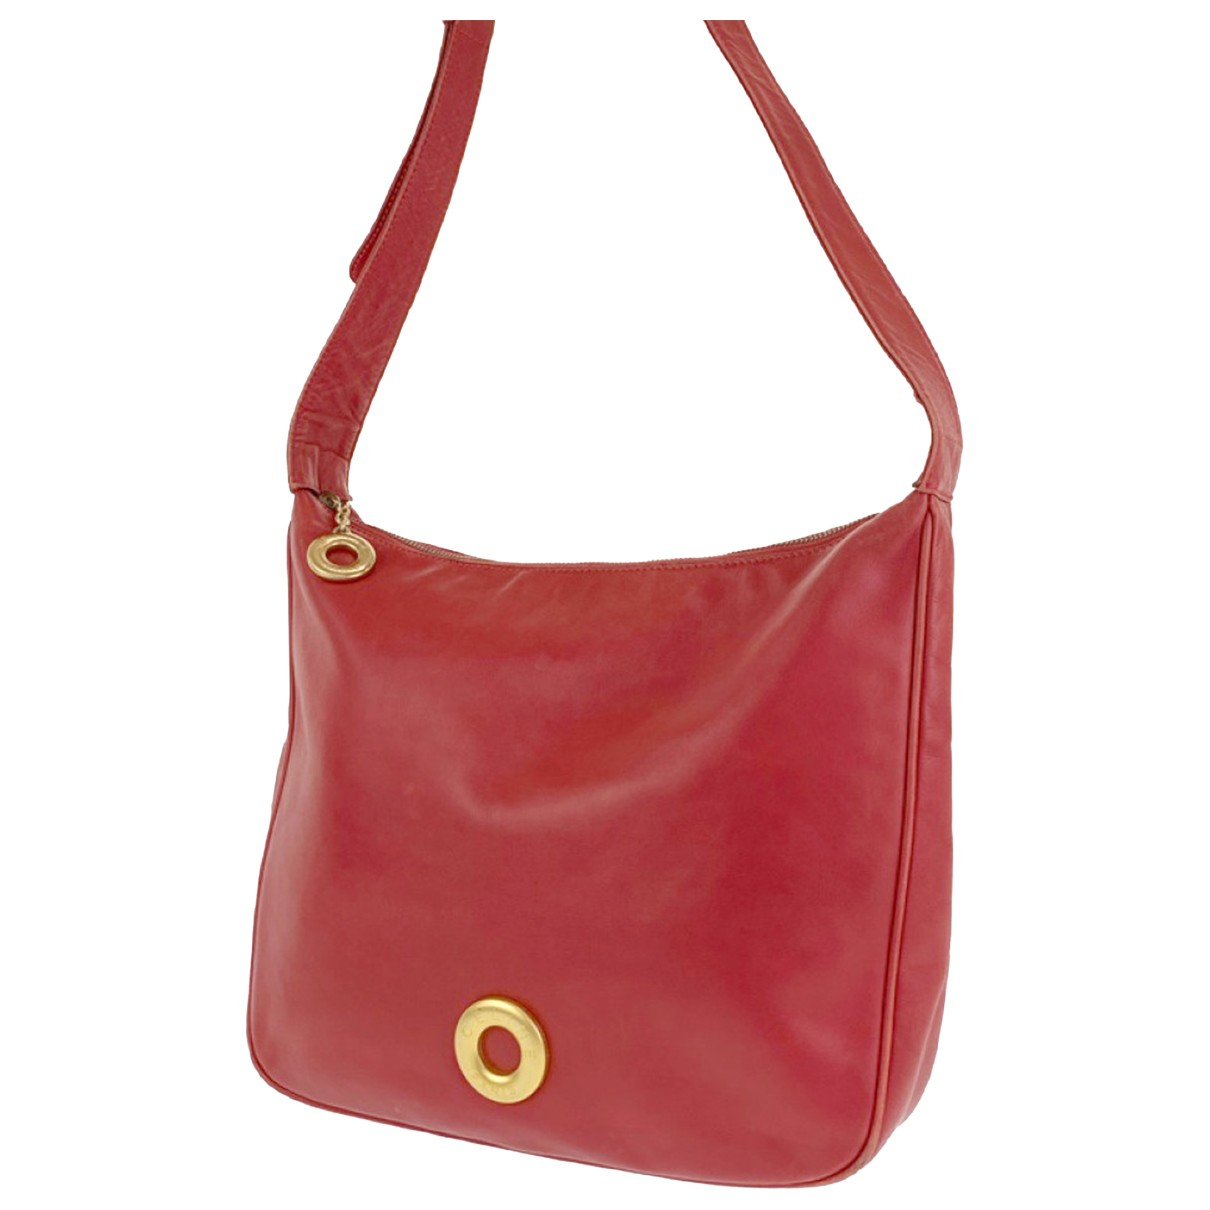 Celine N Leather handbag for Women N